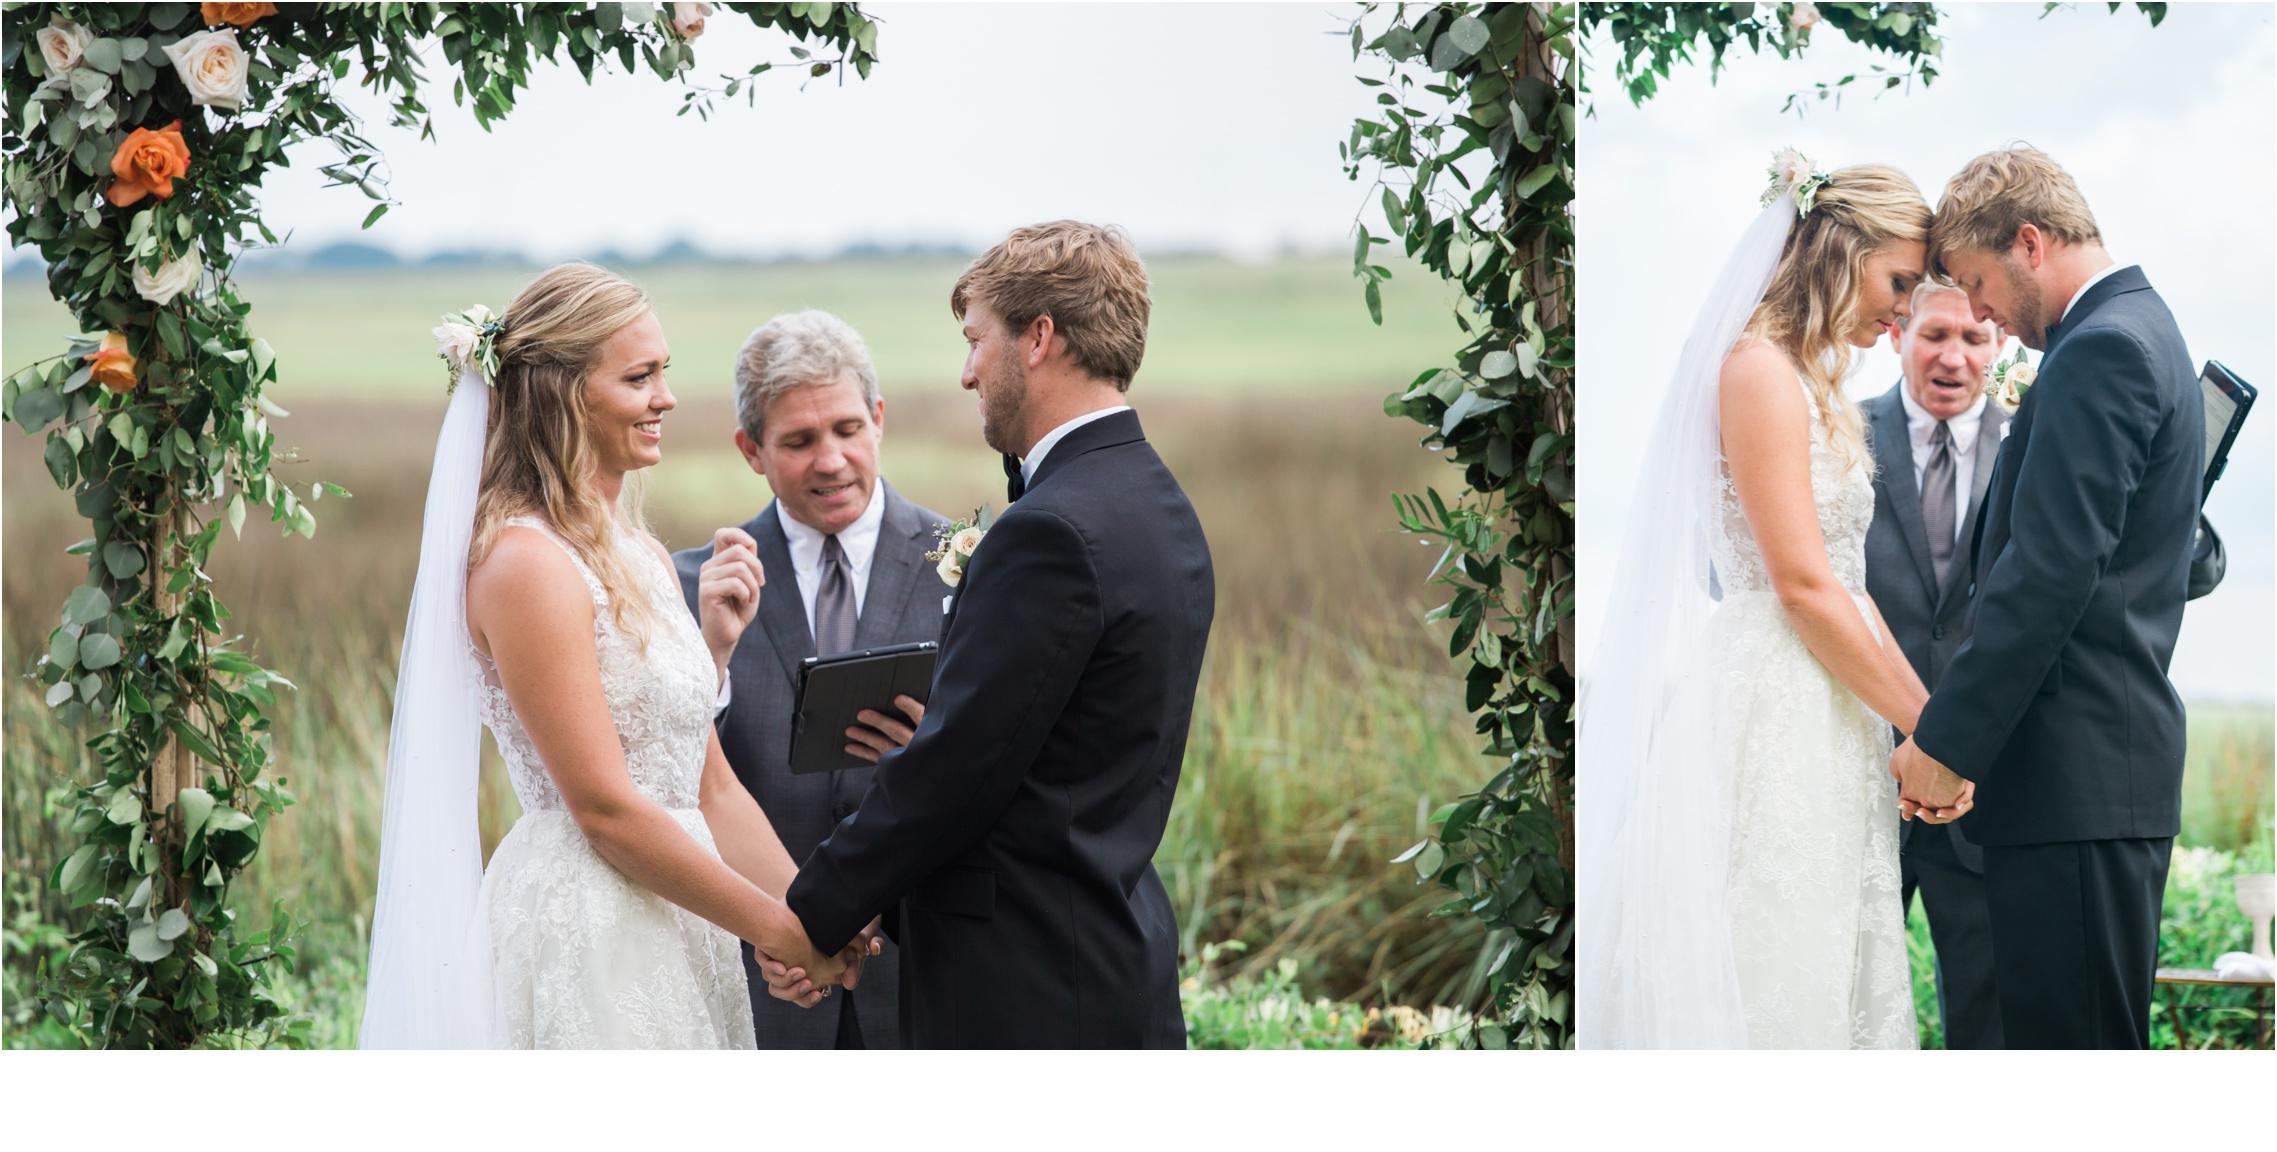 Rainey_Gregg_Photography_St._Simons_Island_Georgia_California_Wedding_Portrait_Photography_0074.jpg